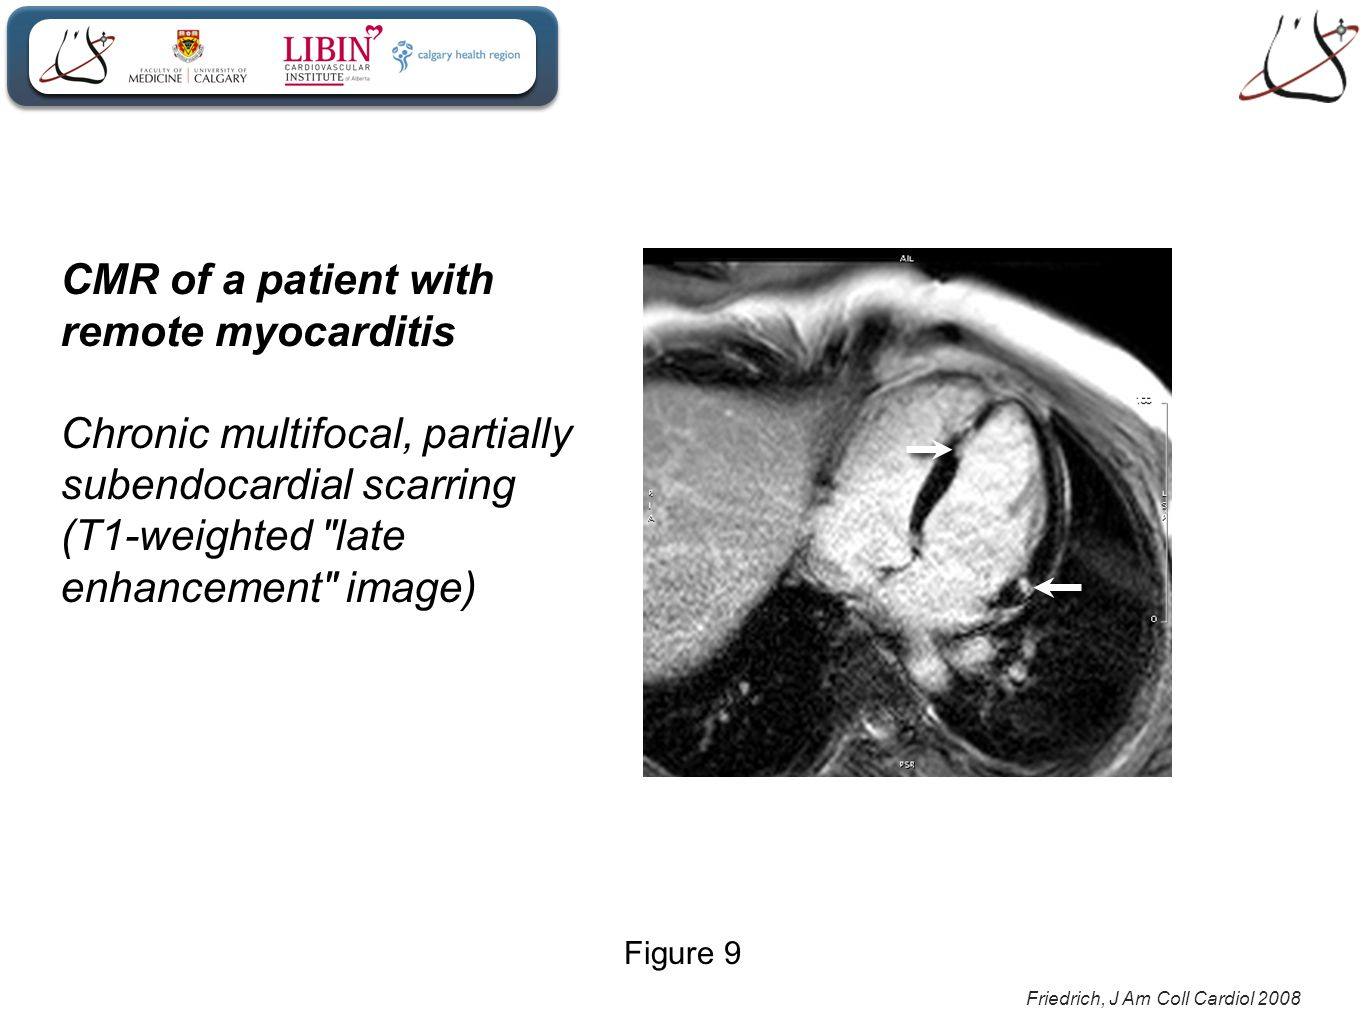 Friedrich, J Am Coll Cardiol 2008 CMR of a patient with remote myocarditis Chronic multifocal, partially subendocardial scarring (T1-weighted late enhancement image) Figure 9